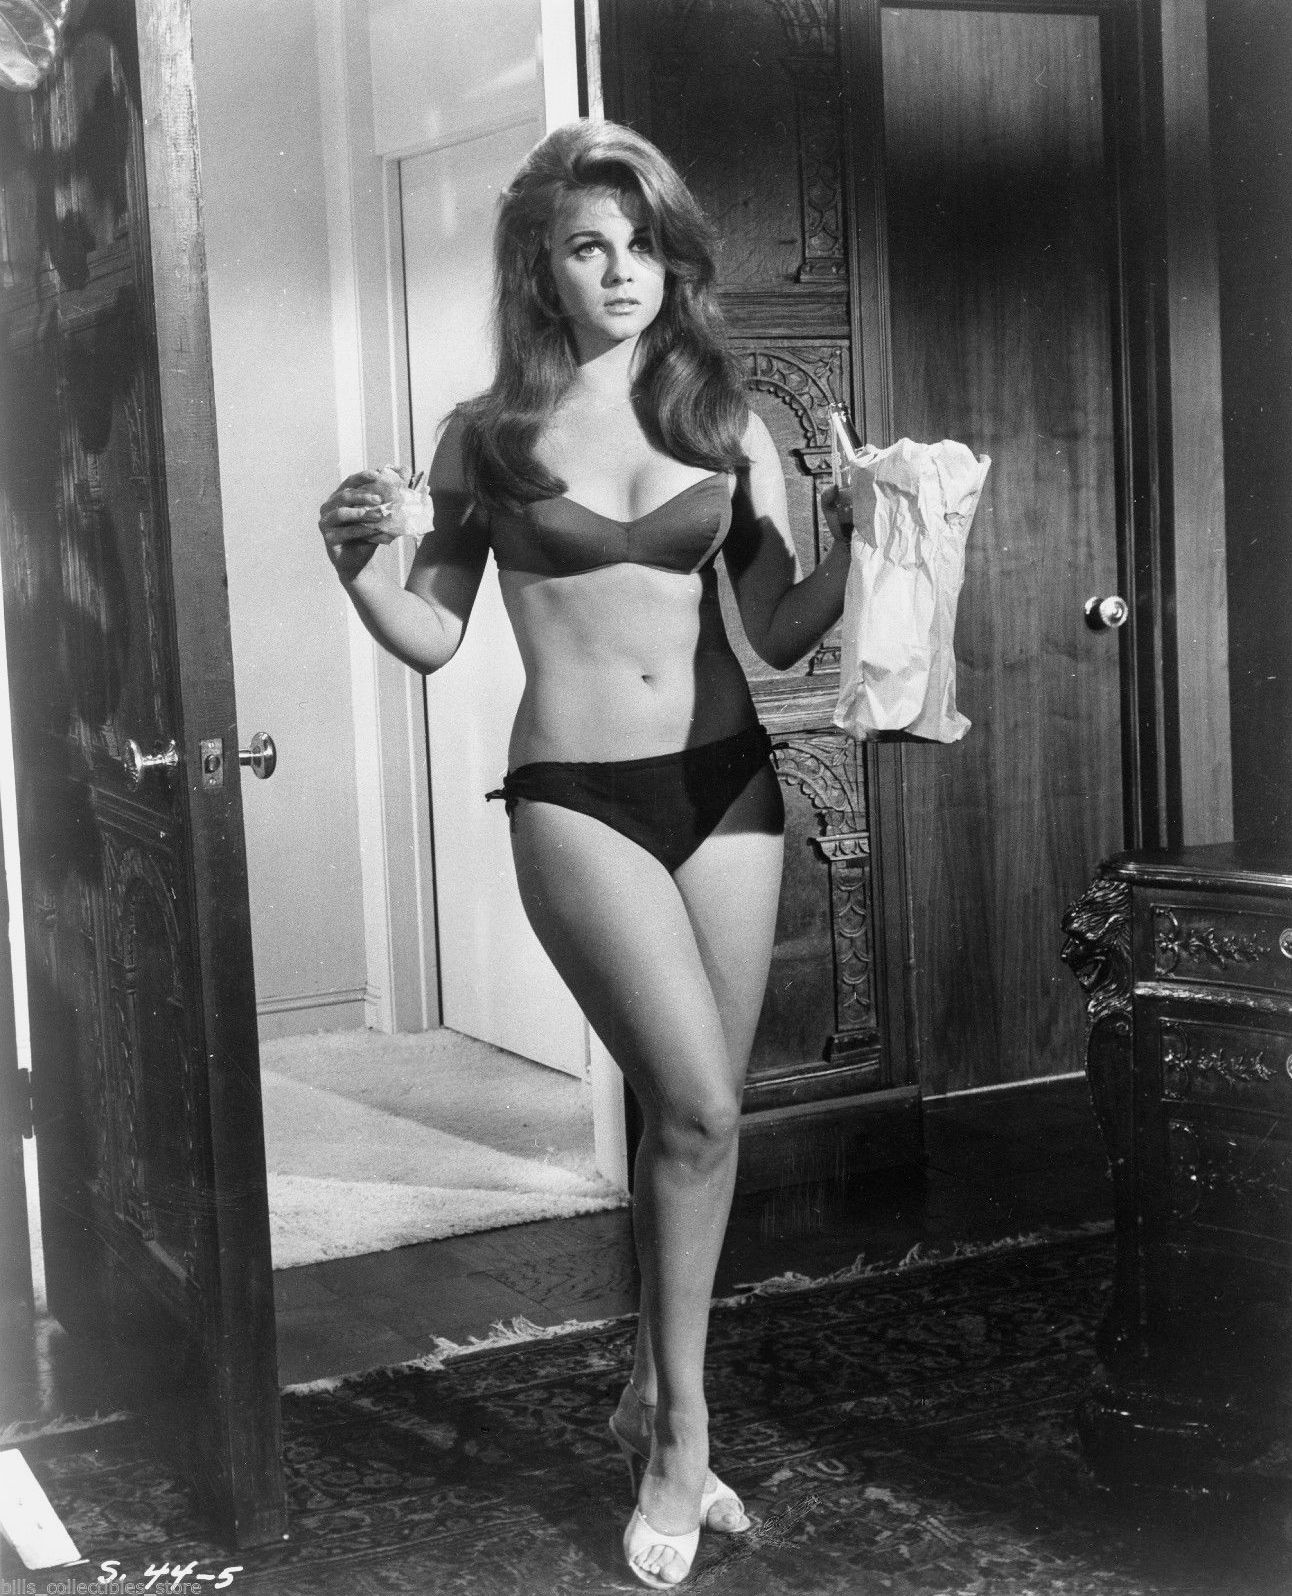 Pictures of young ann margret, threesome pussys only